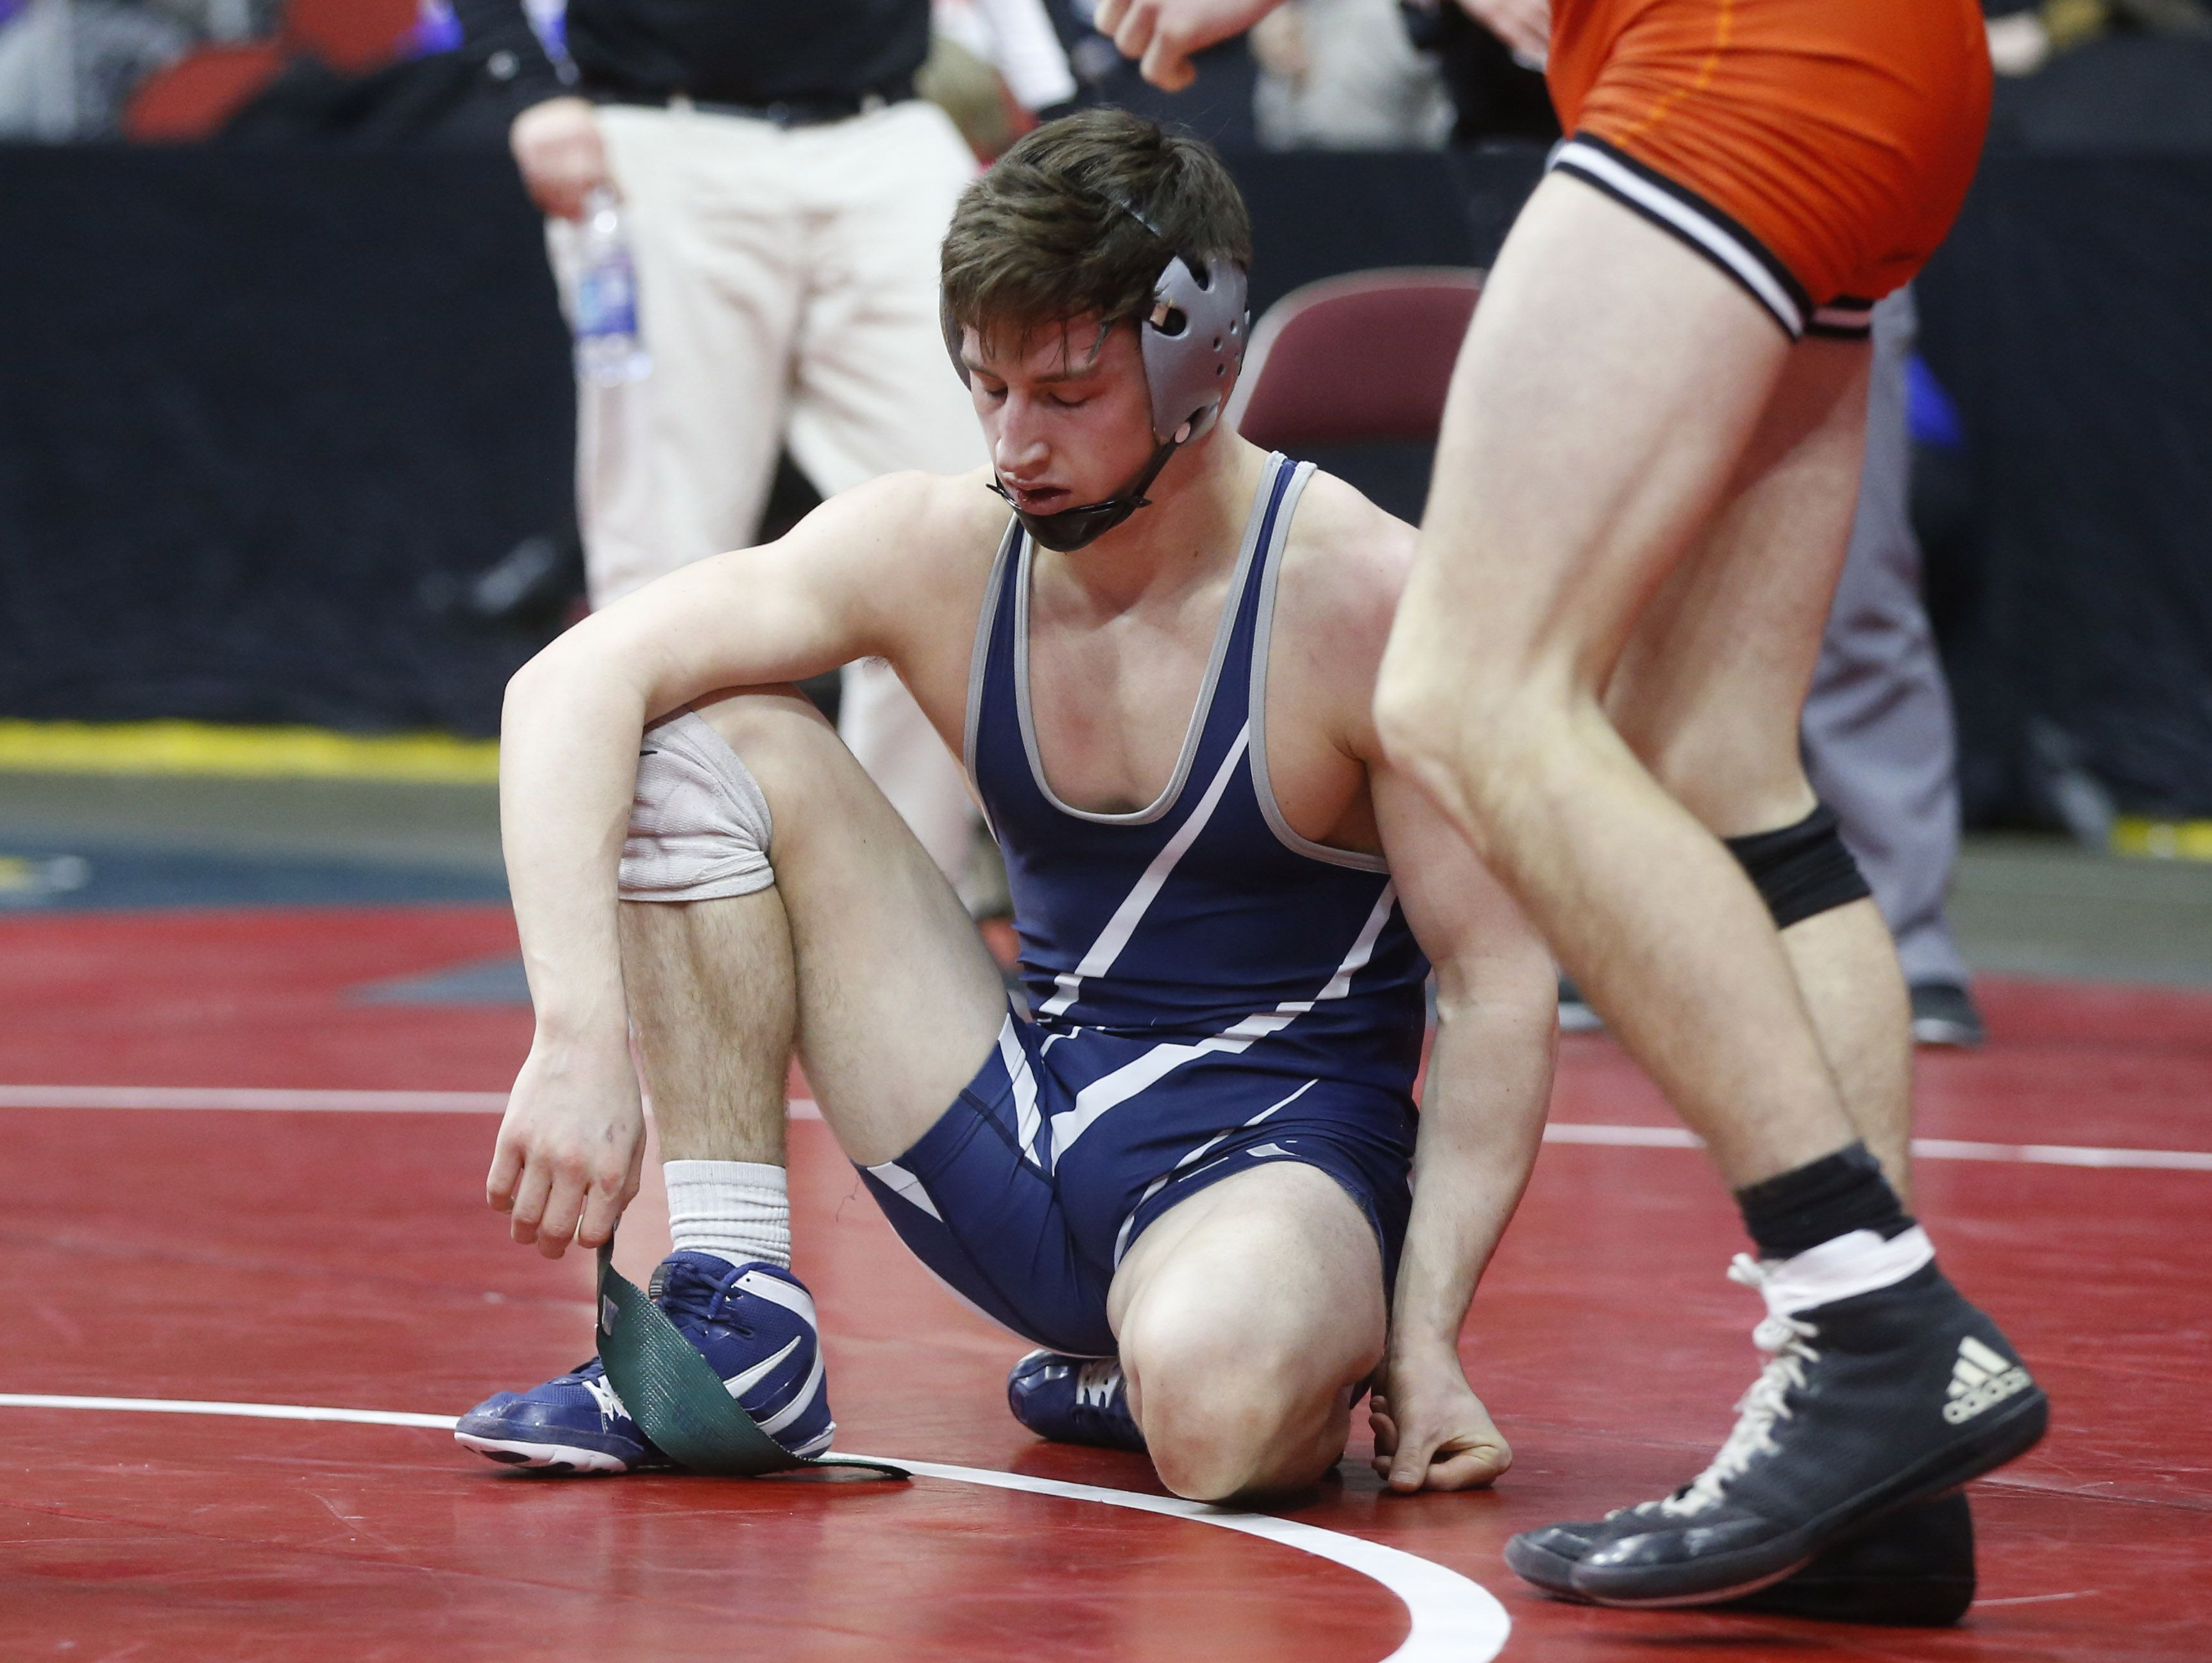 Cedar Rapids Xavier's Josh Gerke reacts after falling to Valley's Grant Stotts in their 145 pound match Thursday, Feb. 16, 2017 during the class 3A opening round at the 2017 State Wresting Tournament at Wells Fargo Arena in Des Moines.Thursday, Feb. 16, 2017 during the class 3A opening round at the 2017 State Wresting Tournament at Wells Fargo Arena in Des Moines.